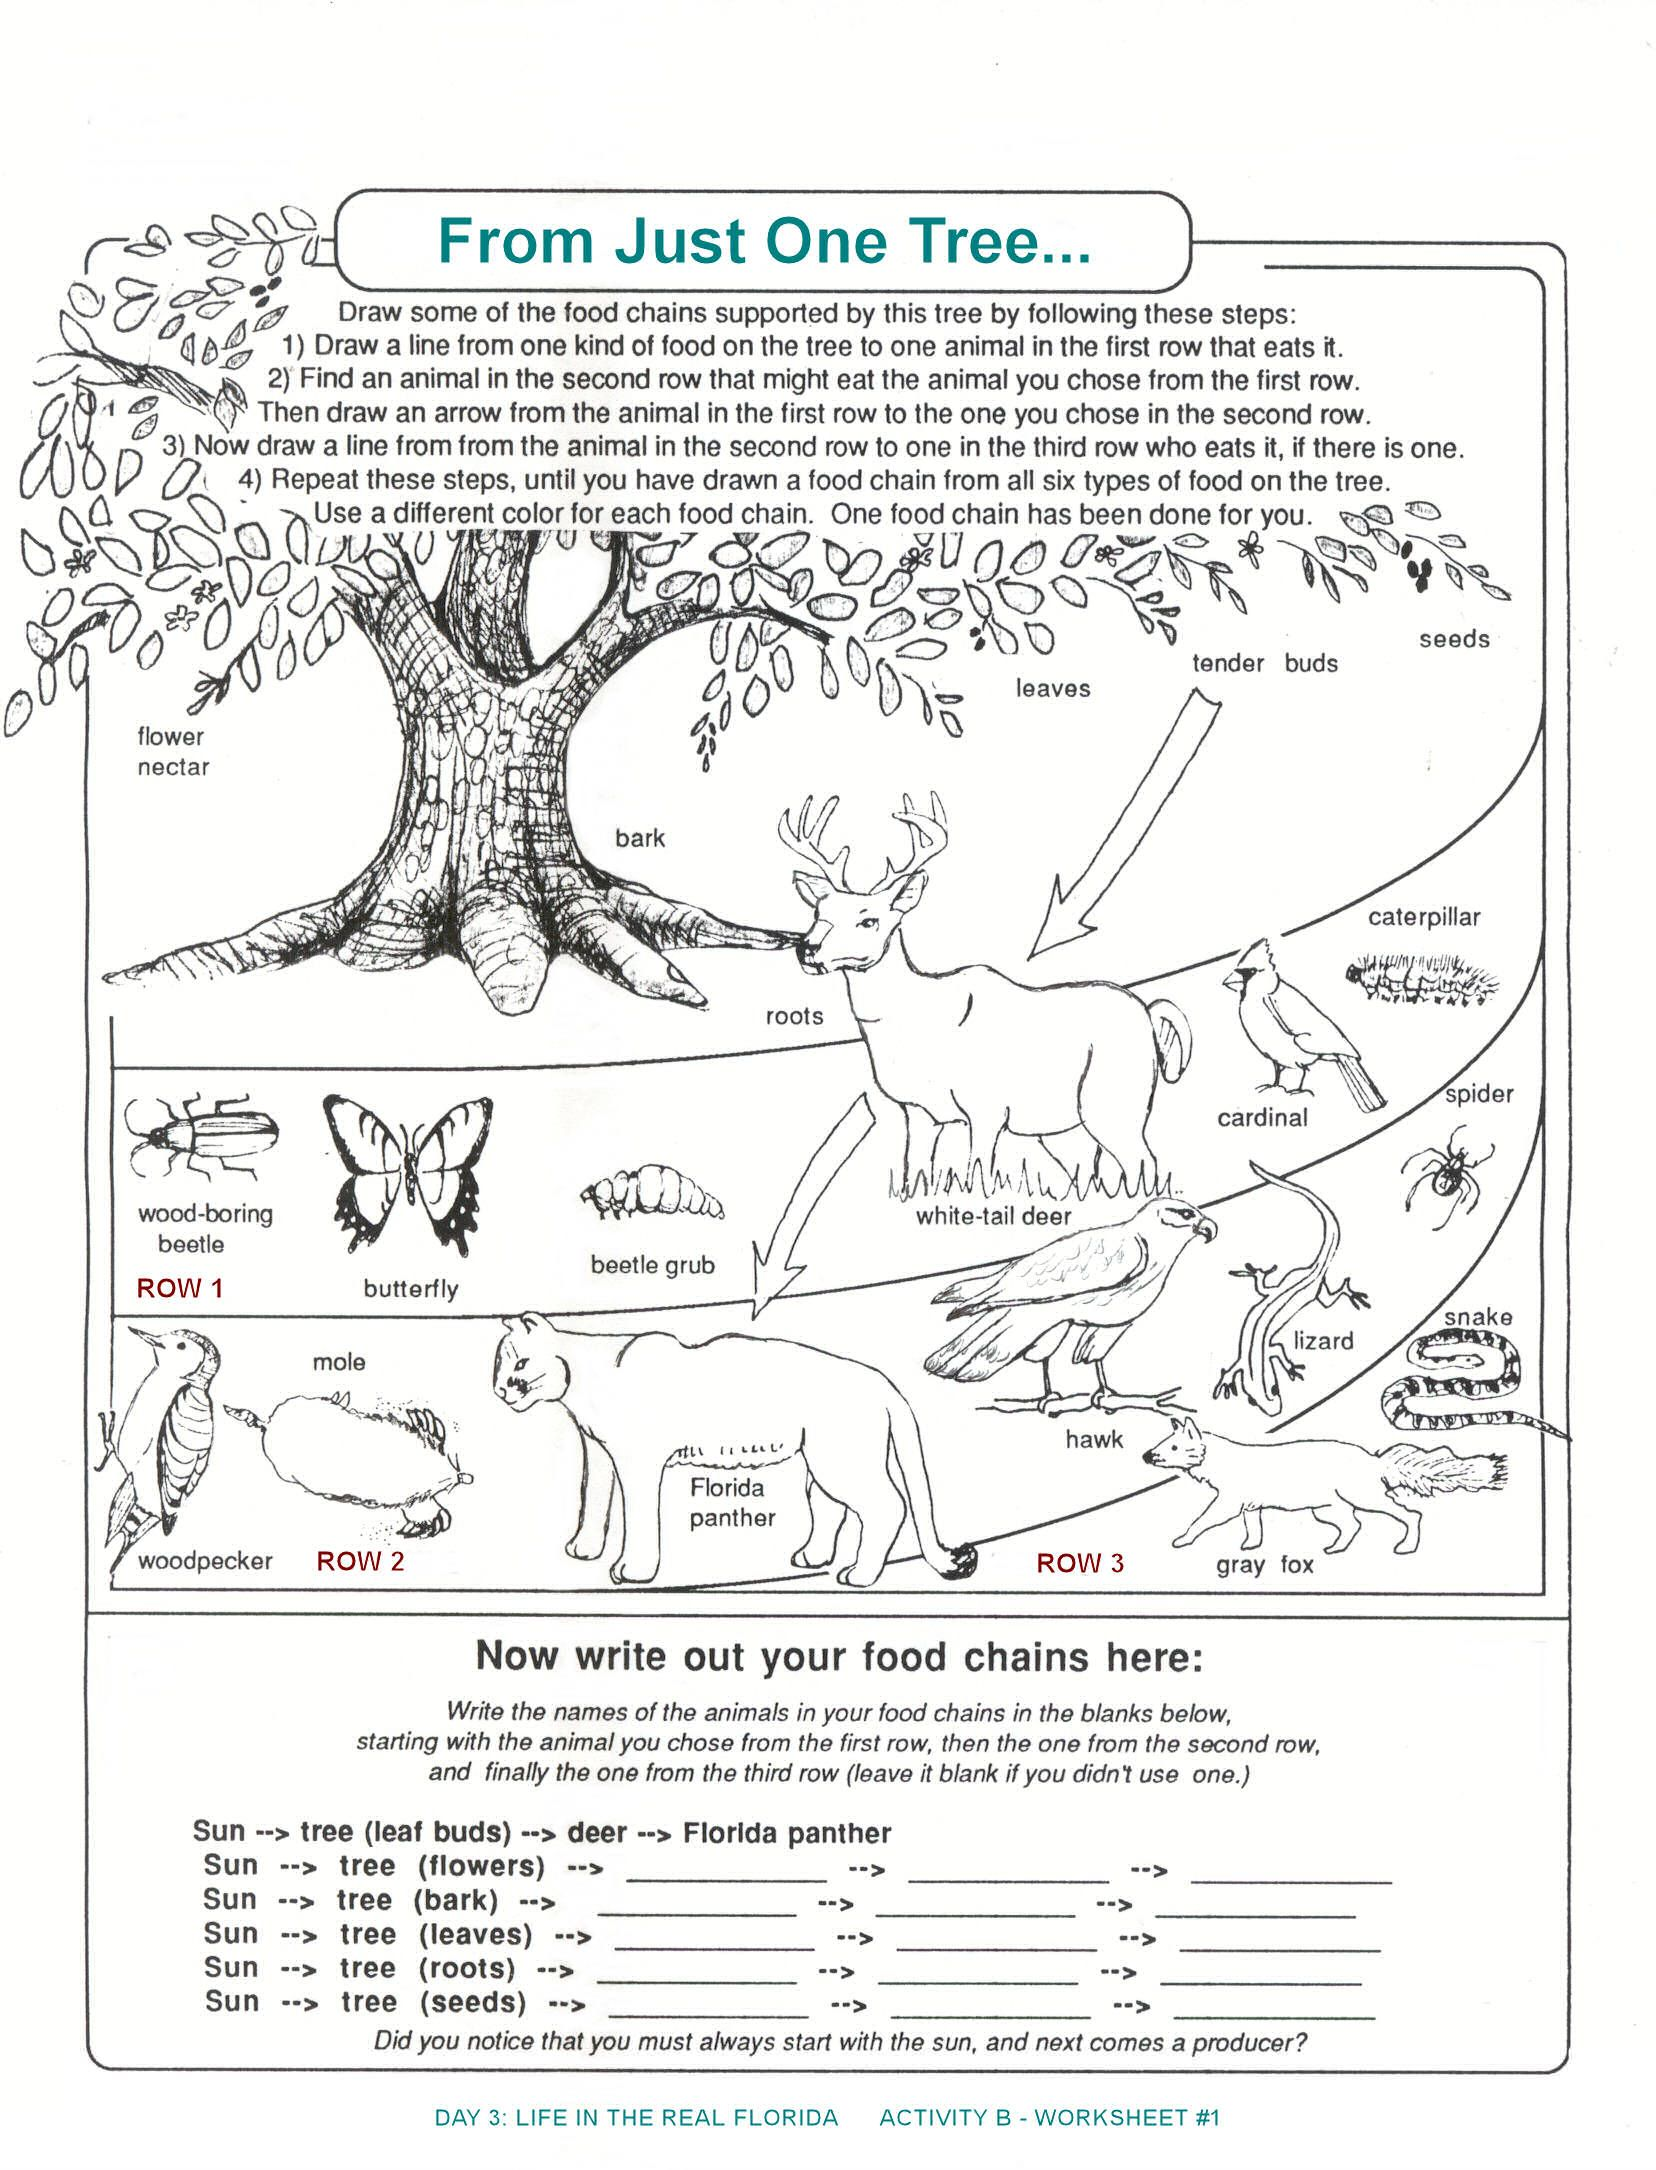 decomposers worksheets for kids – Producer Consumer Decomposer Worksheet